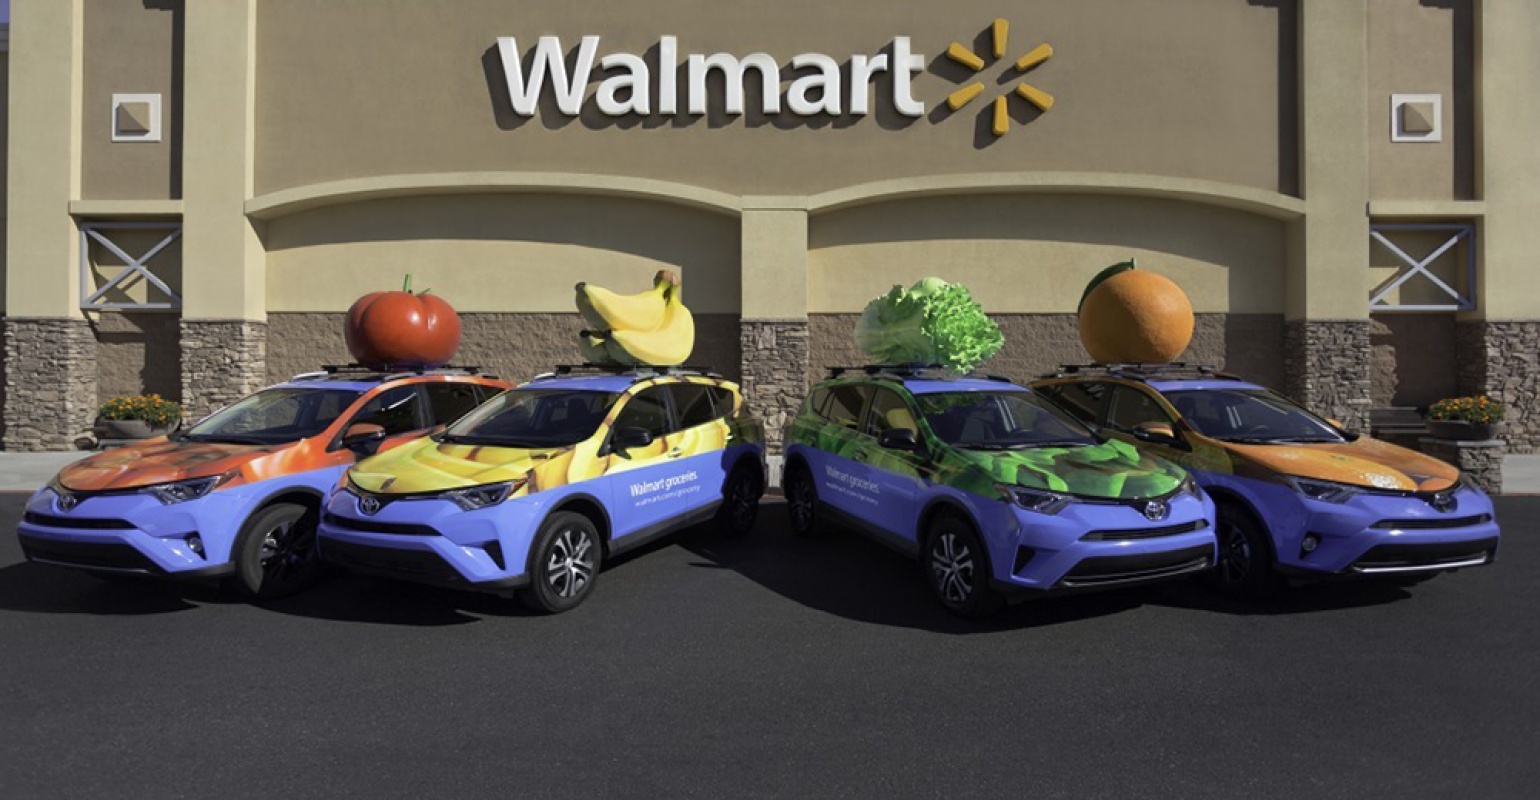 In online grocery, Amazon and Walmart at 'genius' level